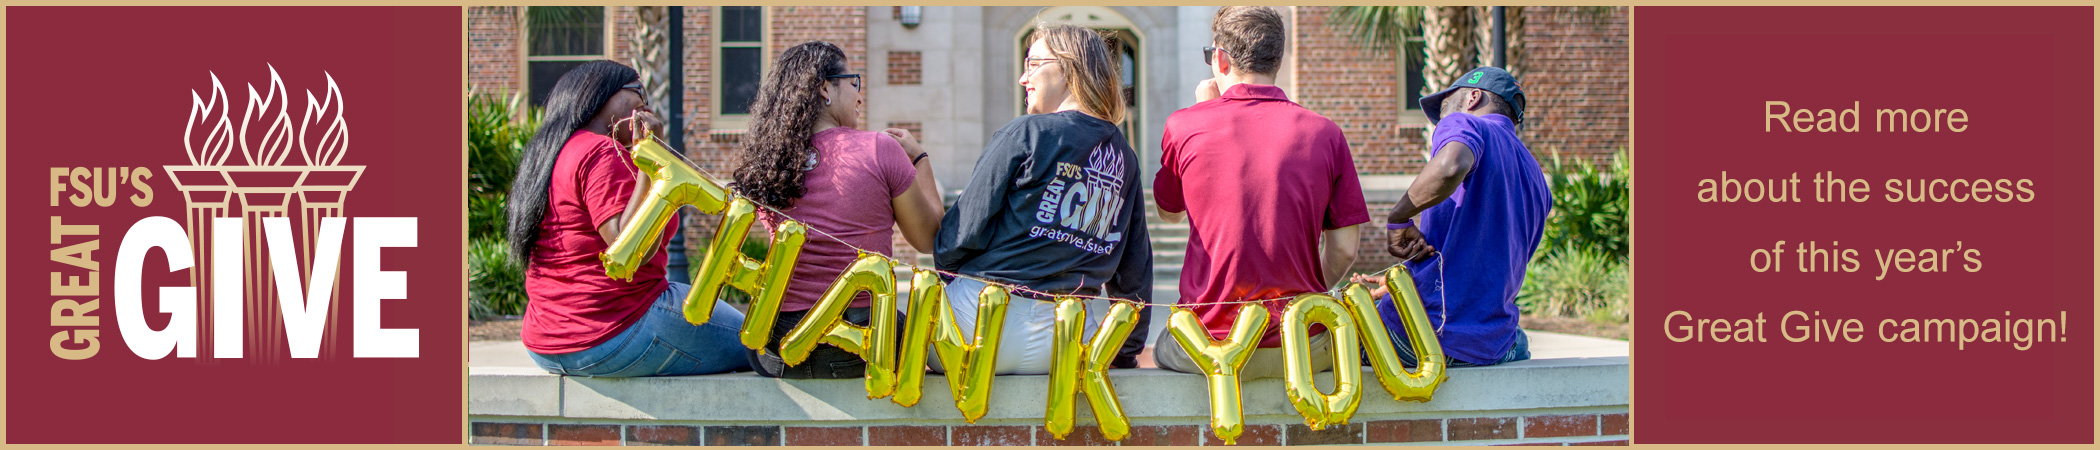 Thank you for your support of FSU's Great Give!